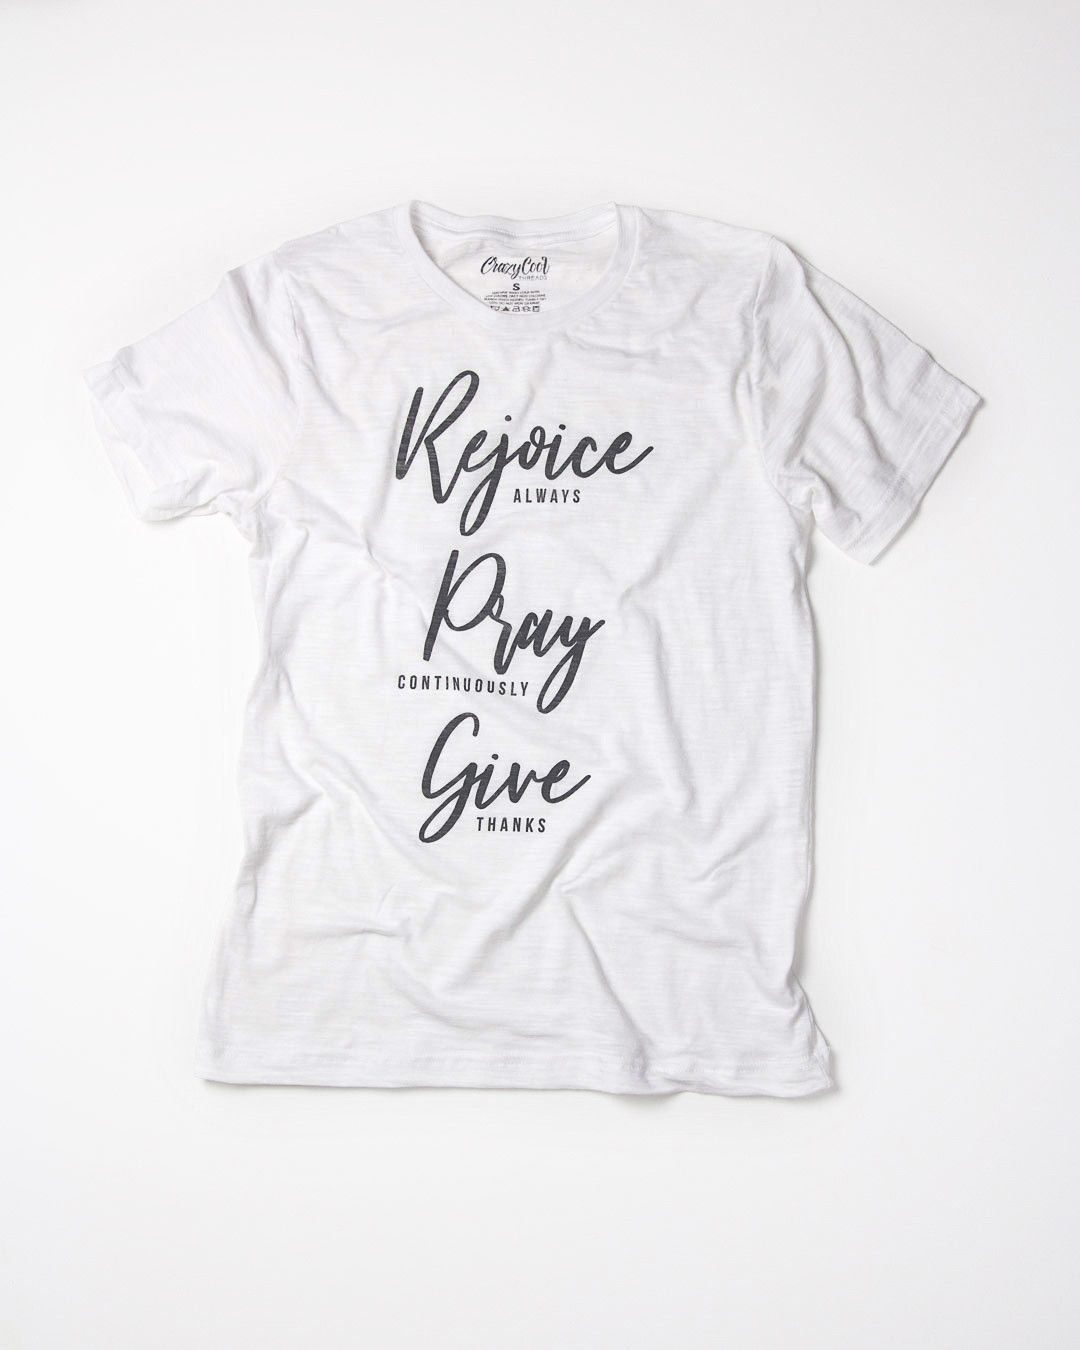 aee52c1e1c5 Rejoice Pray Give - Tee. Rejoice Pray Give - Tee Girls Night Out Outfits